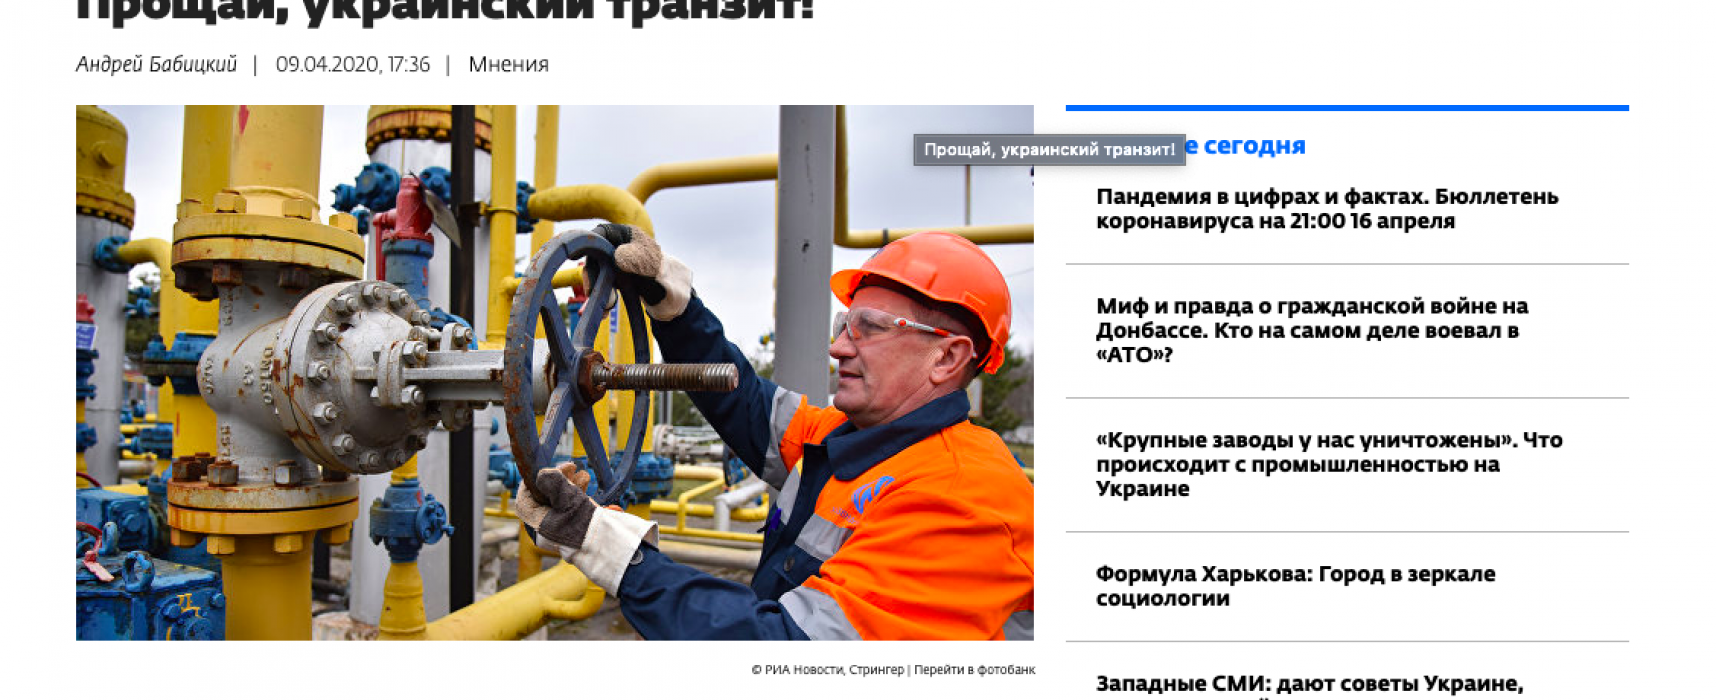 Fake: Ukraine Preparing to Stop Gas Transit in 2021